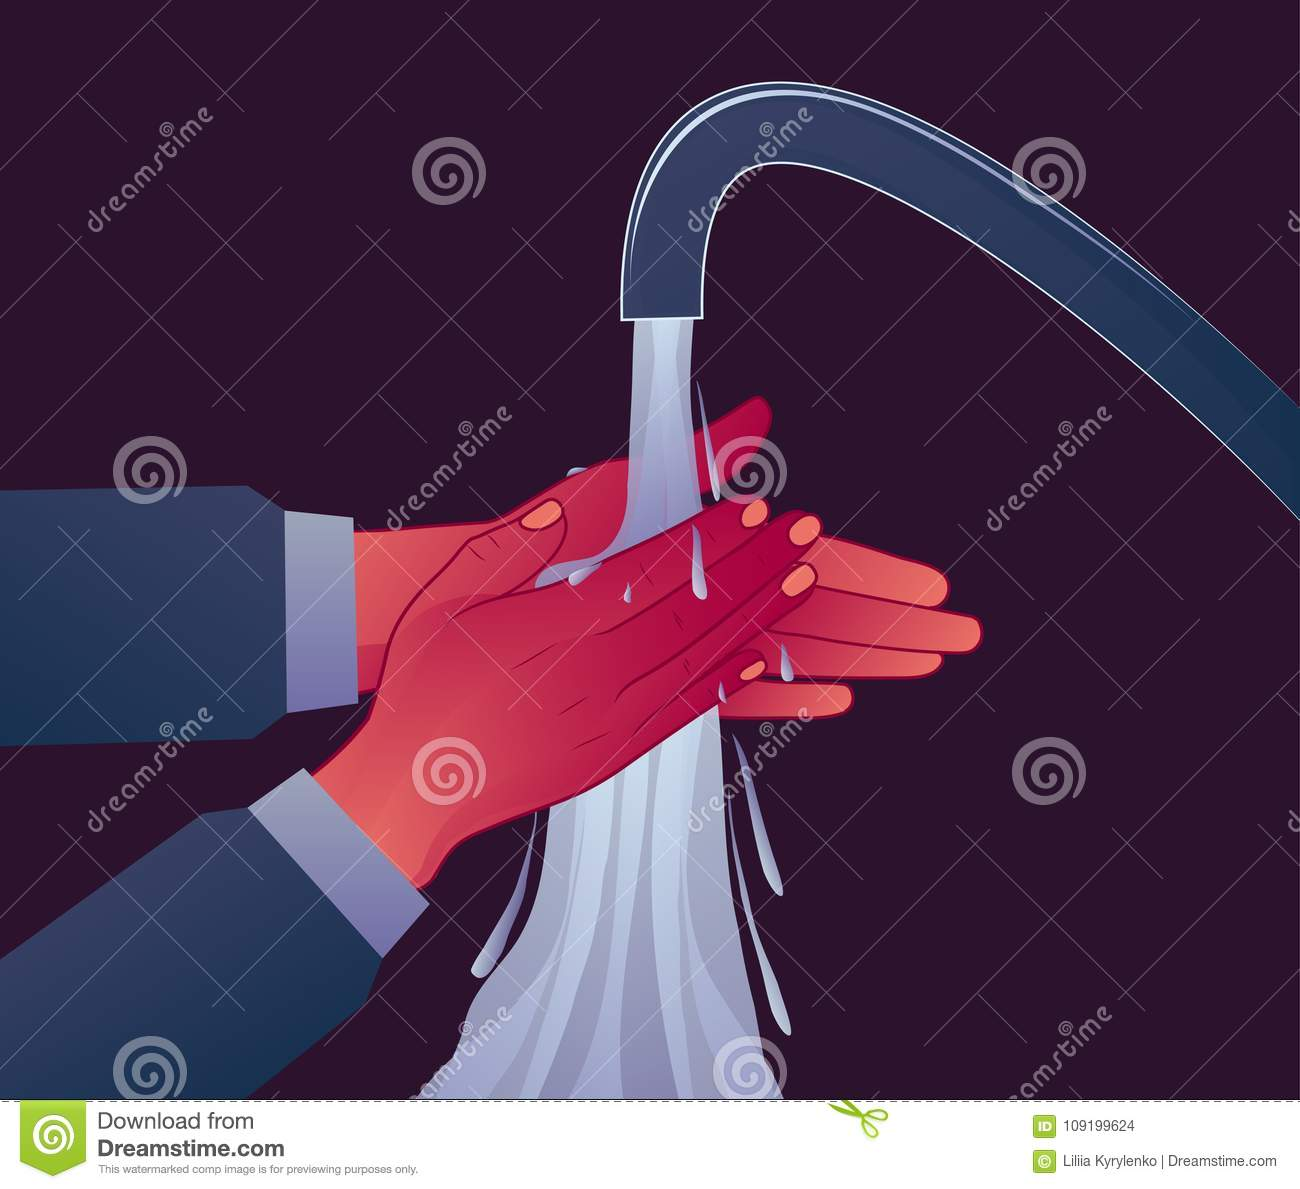 Personal hygiene, wash your hands under the pressure of water. Prevention of diseases. OCD symptom